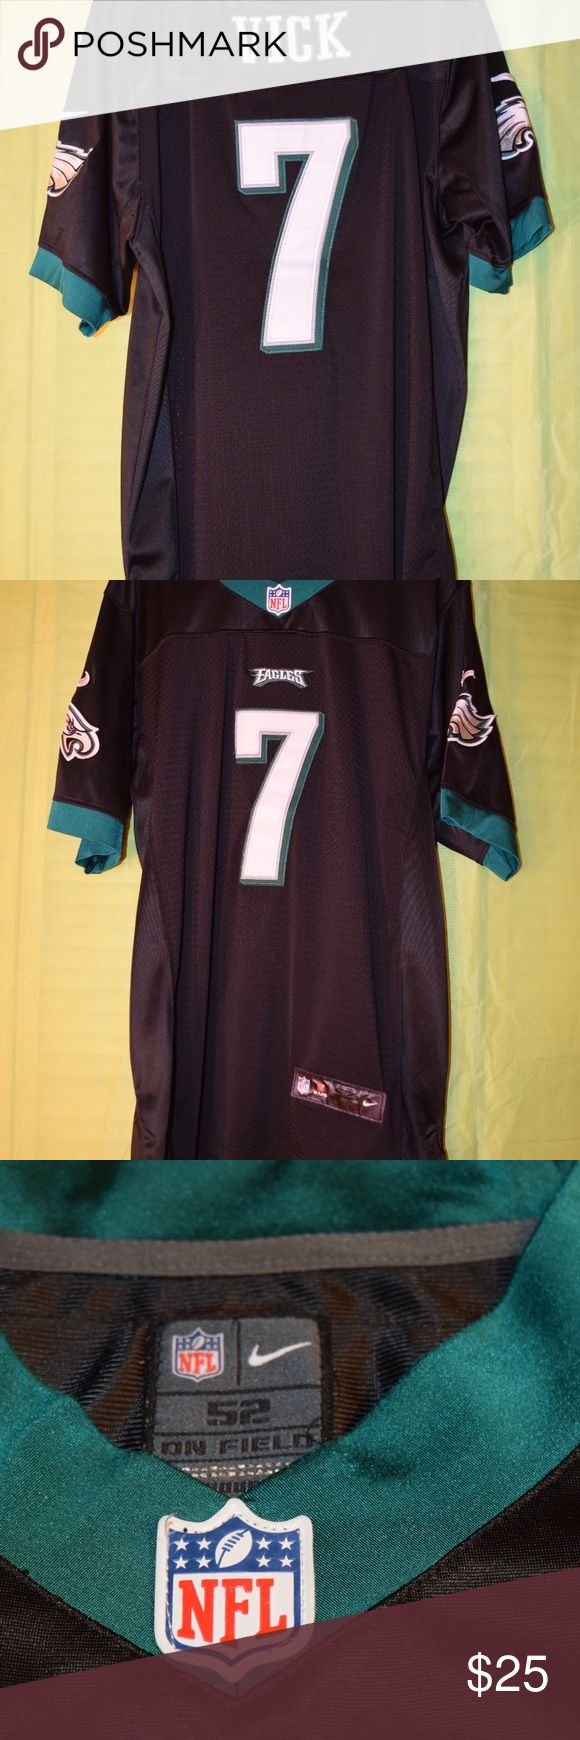 Men's Nike Philadelphia Eagles Michael Vick Jersey Men's Nike Philadelphia Eagles Michael Vick #7 Jersey. Black. Size 52. Mesh body, stiched shadowed numbers and name. No rips, tears, snags or stains. Nike NFL Shirts